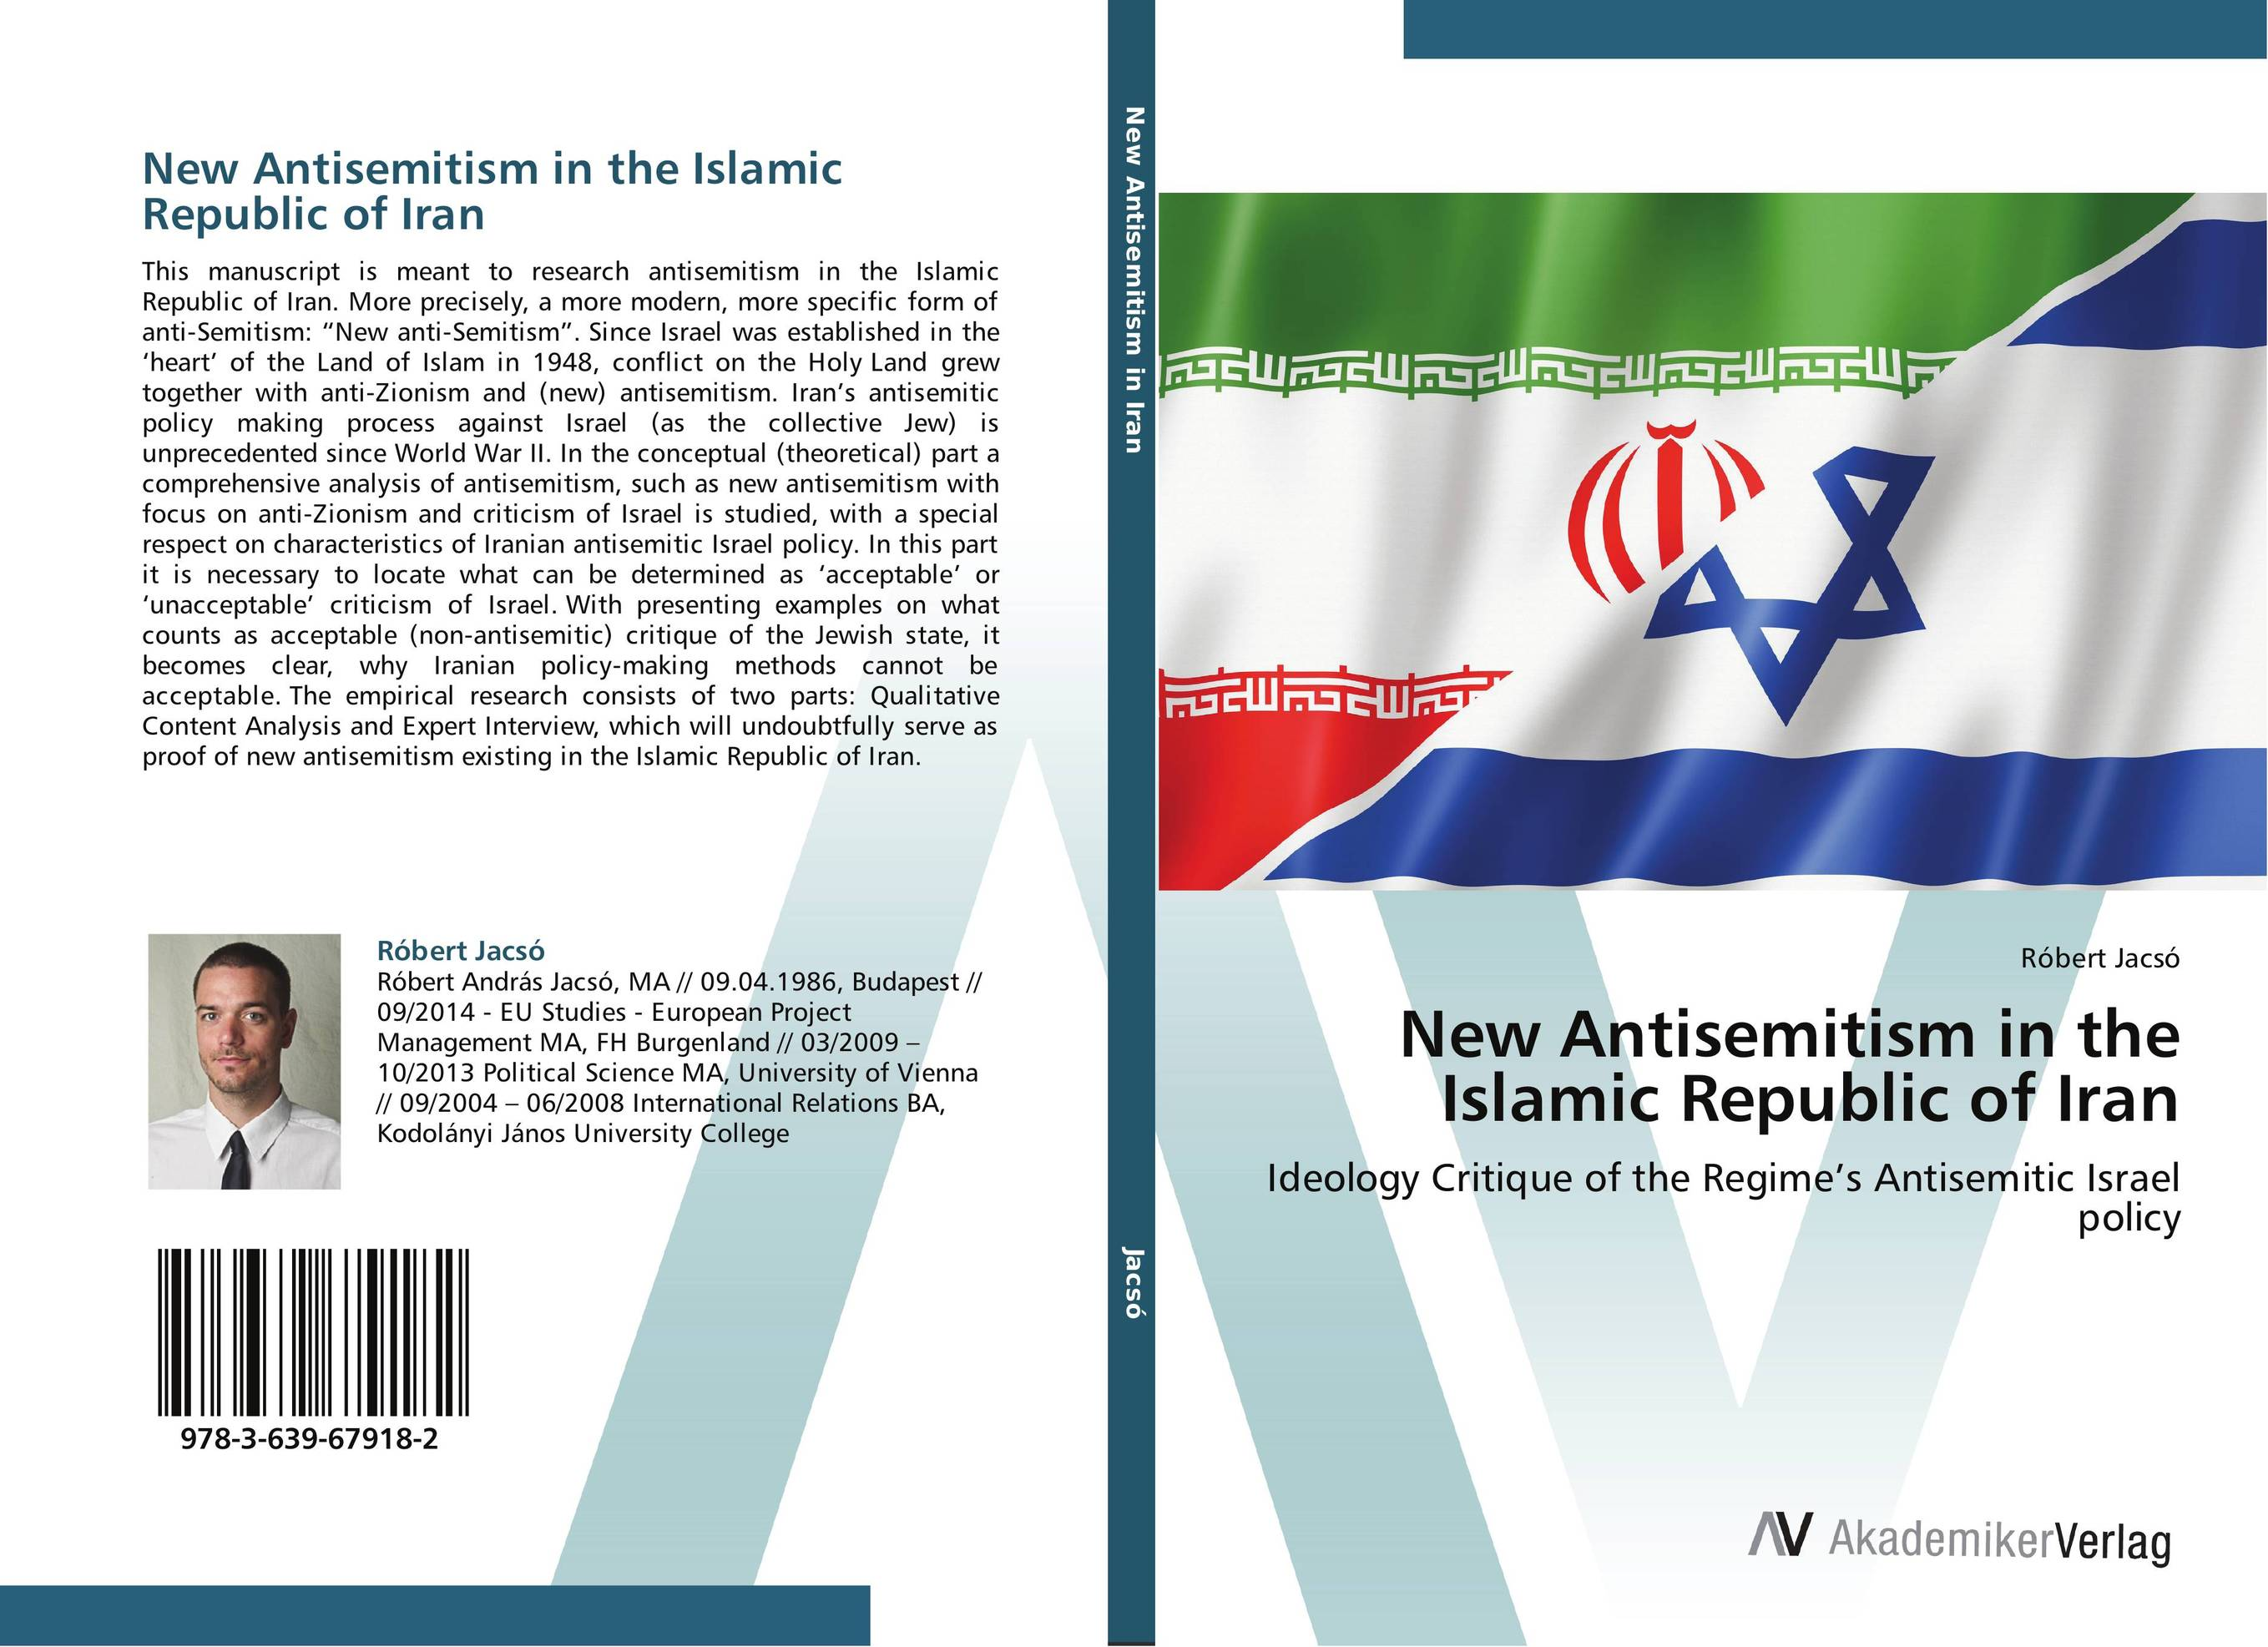 New Antisemitism in the Islamic Republic of Iran demographic dimensions of the new republic